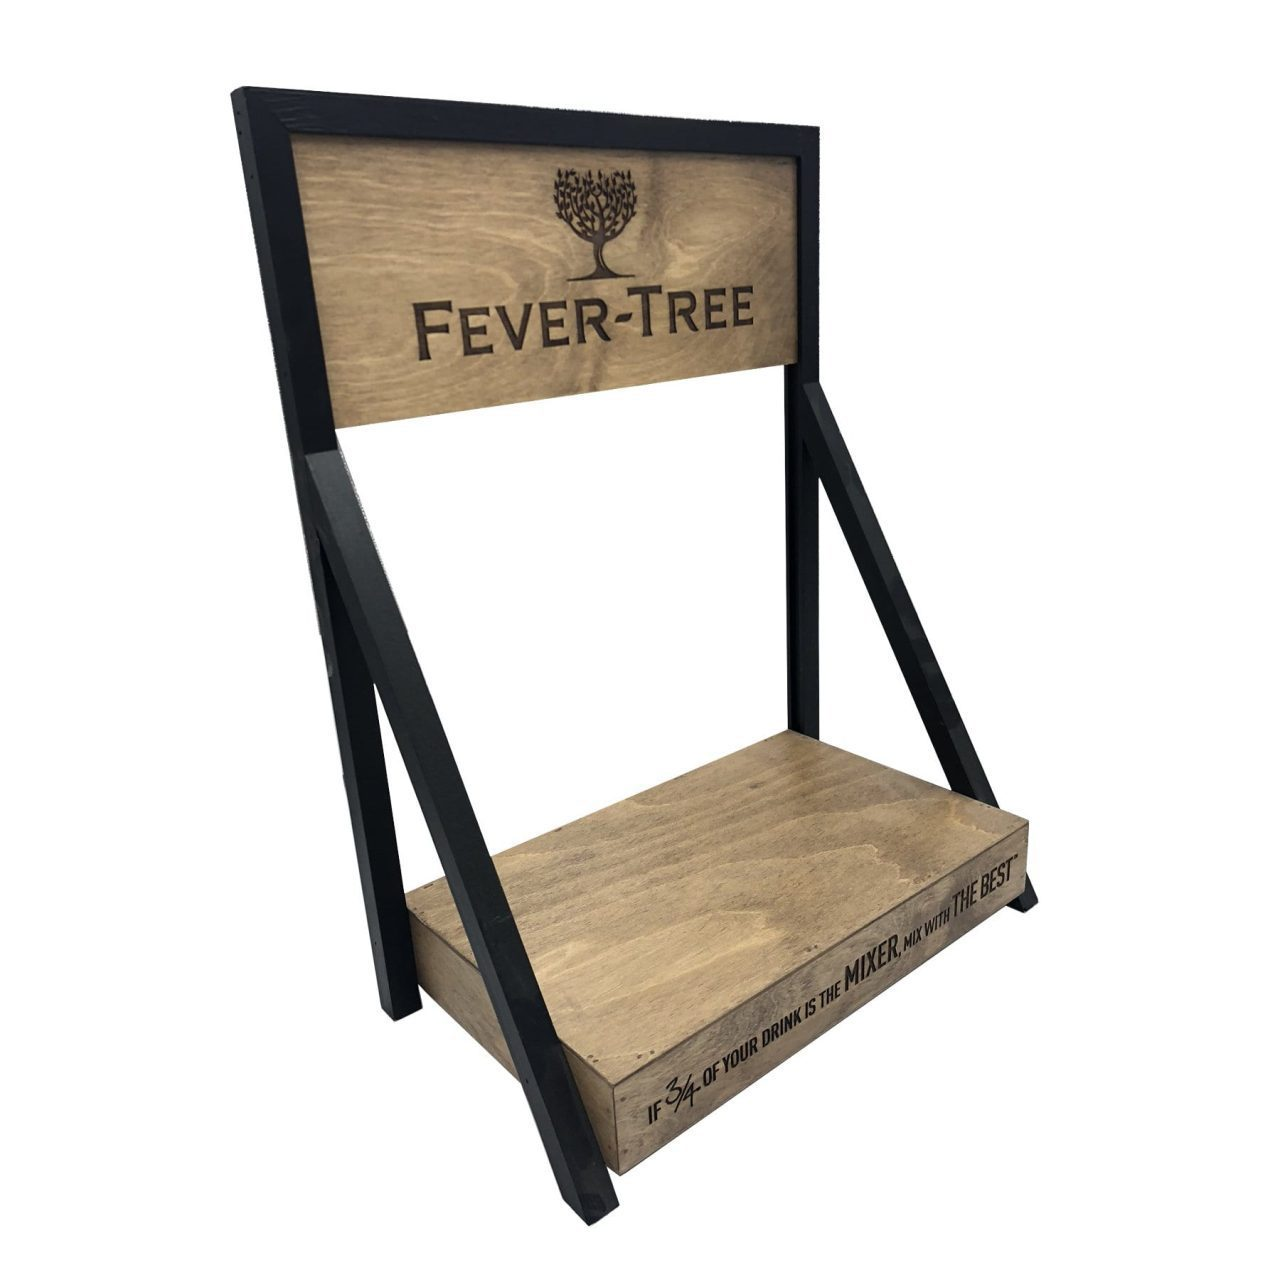 Fever-Tree Mixer Stand